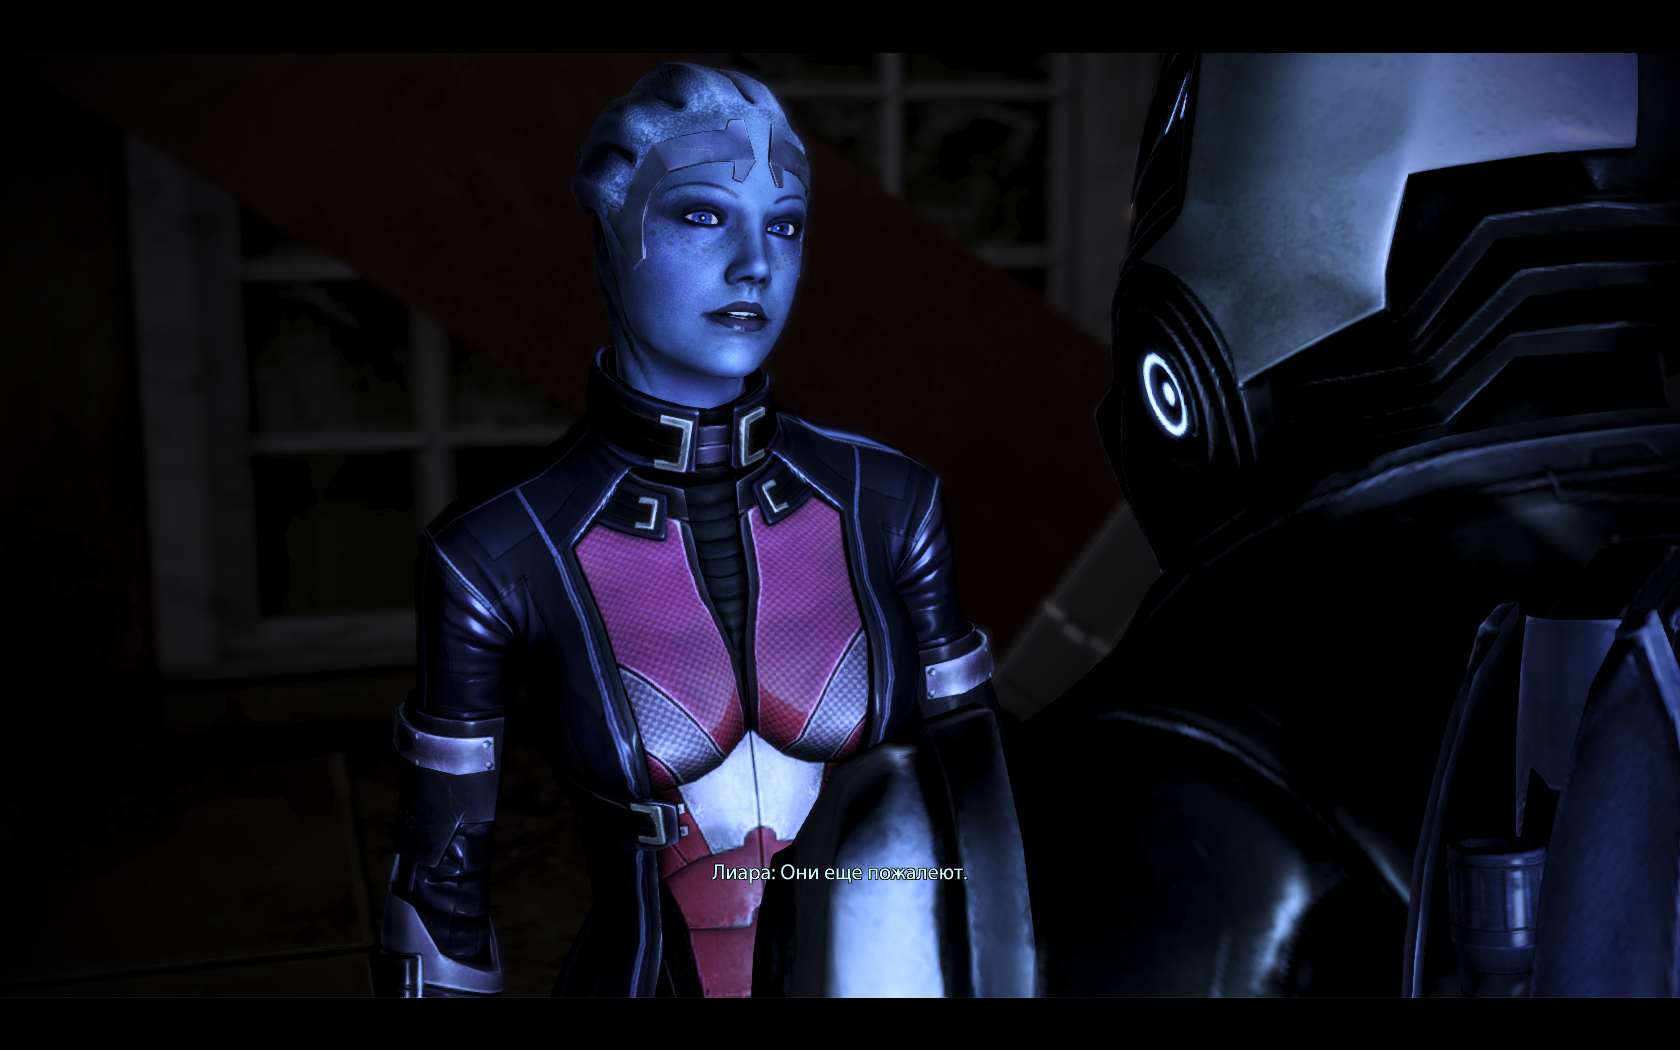 Mass effect liara nackt adult tube